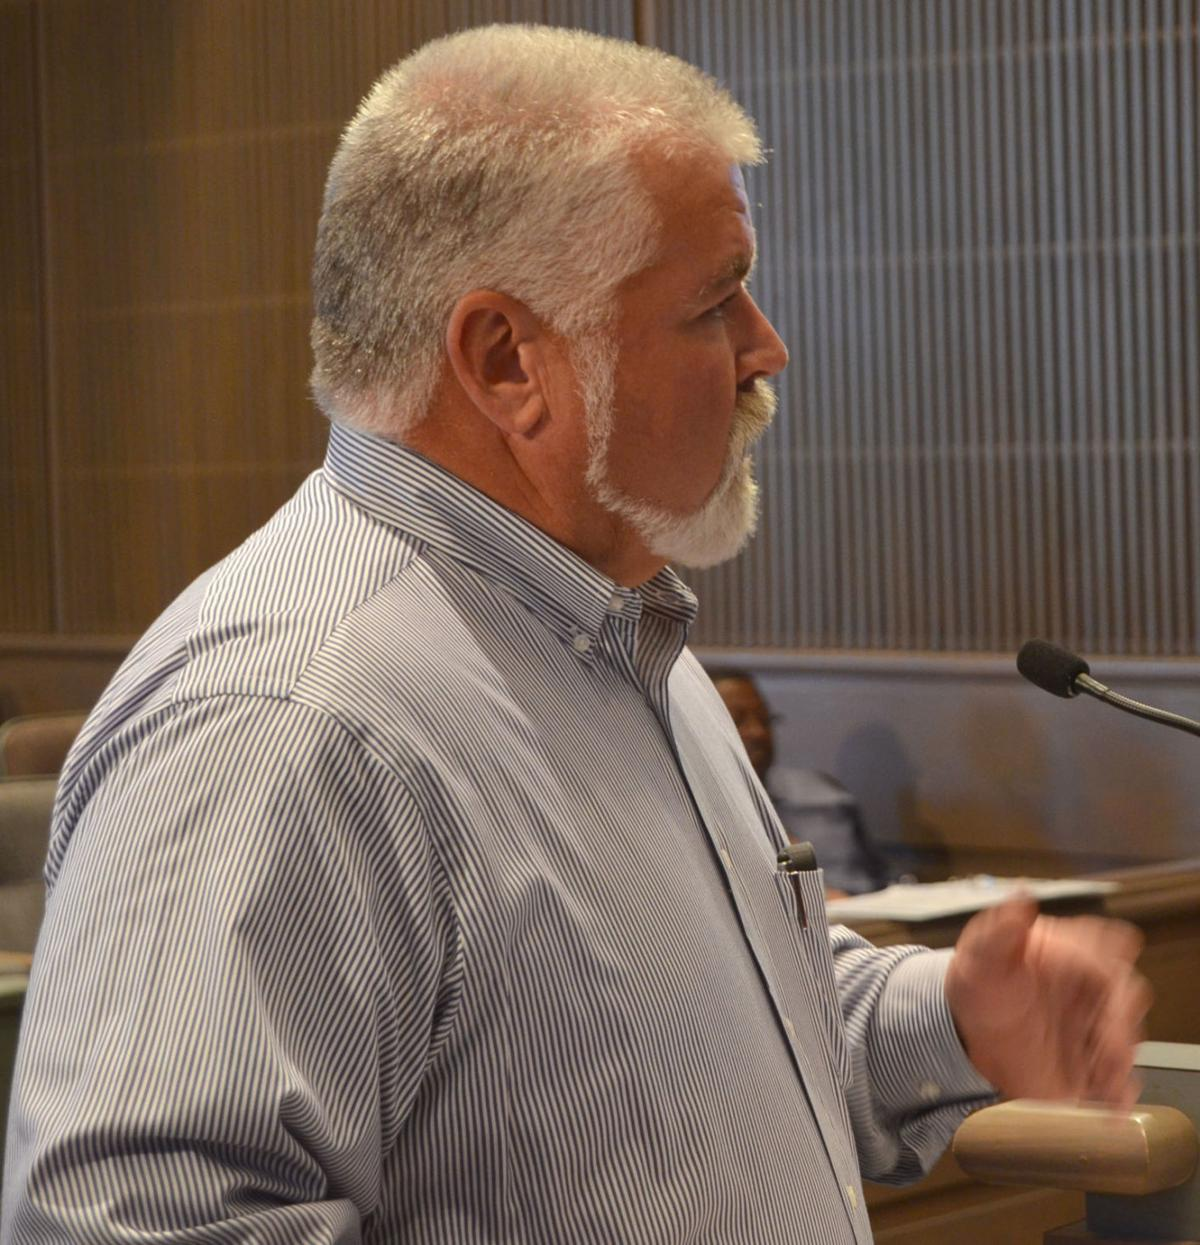 Albany Commission OKs emergency sewer funds